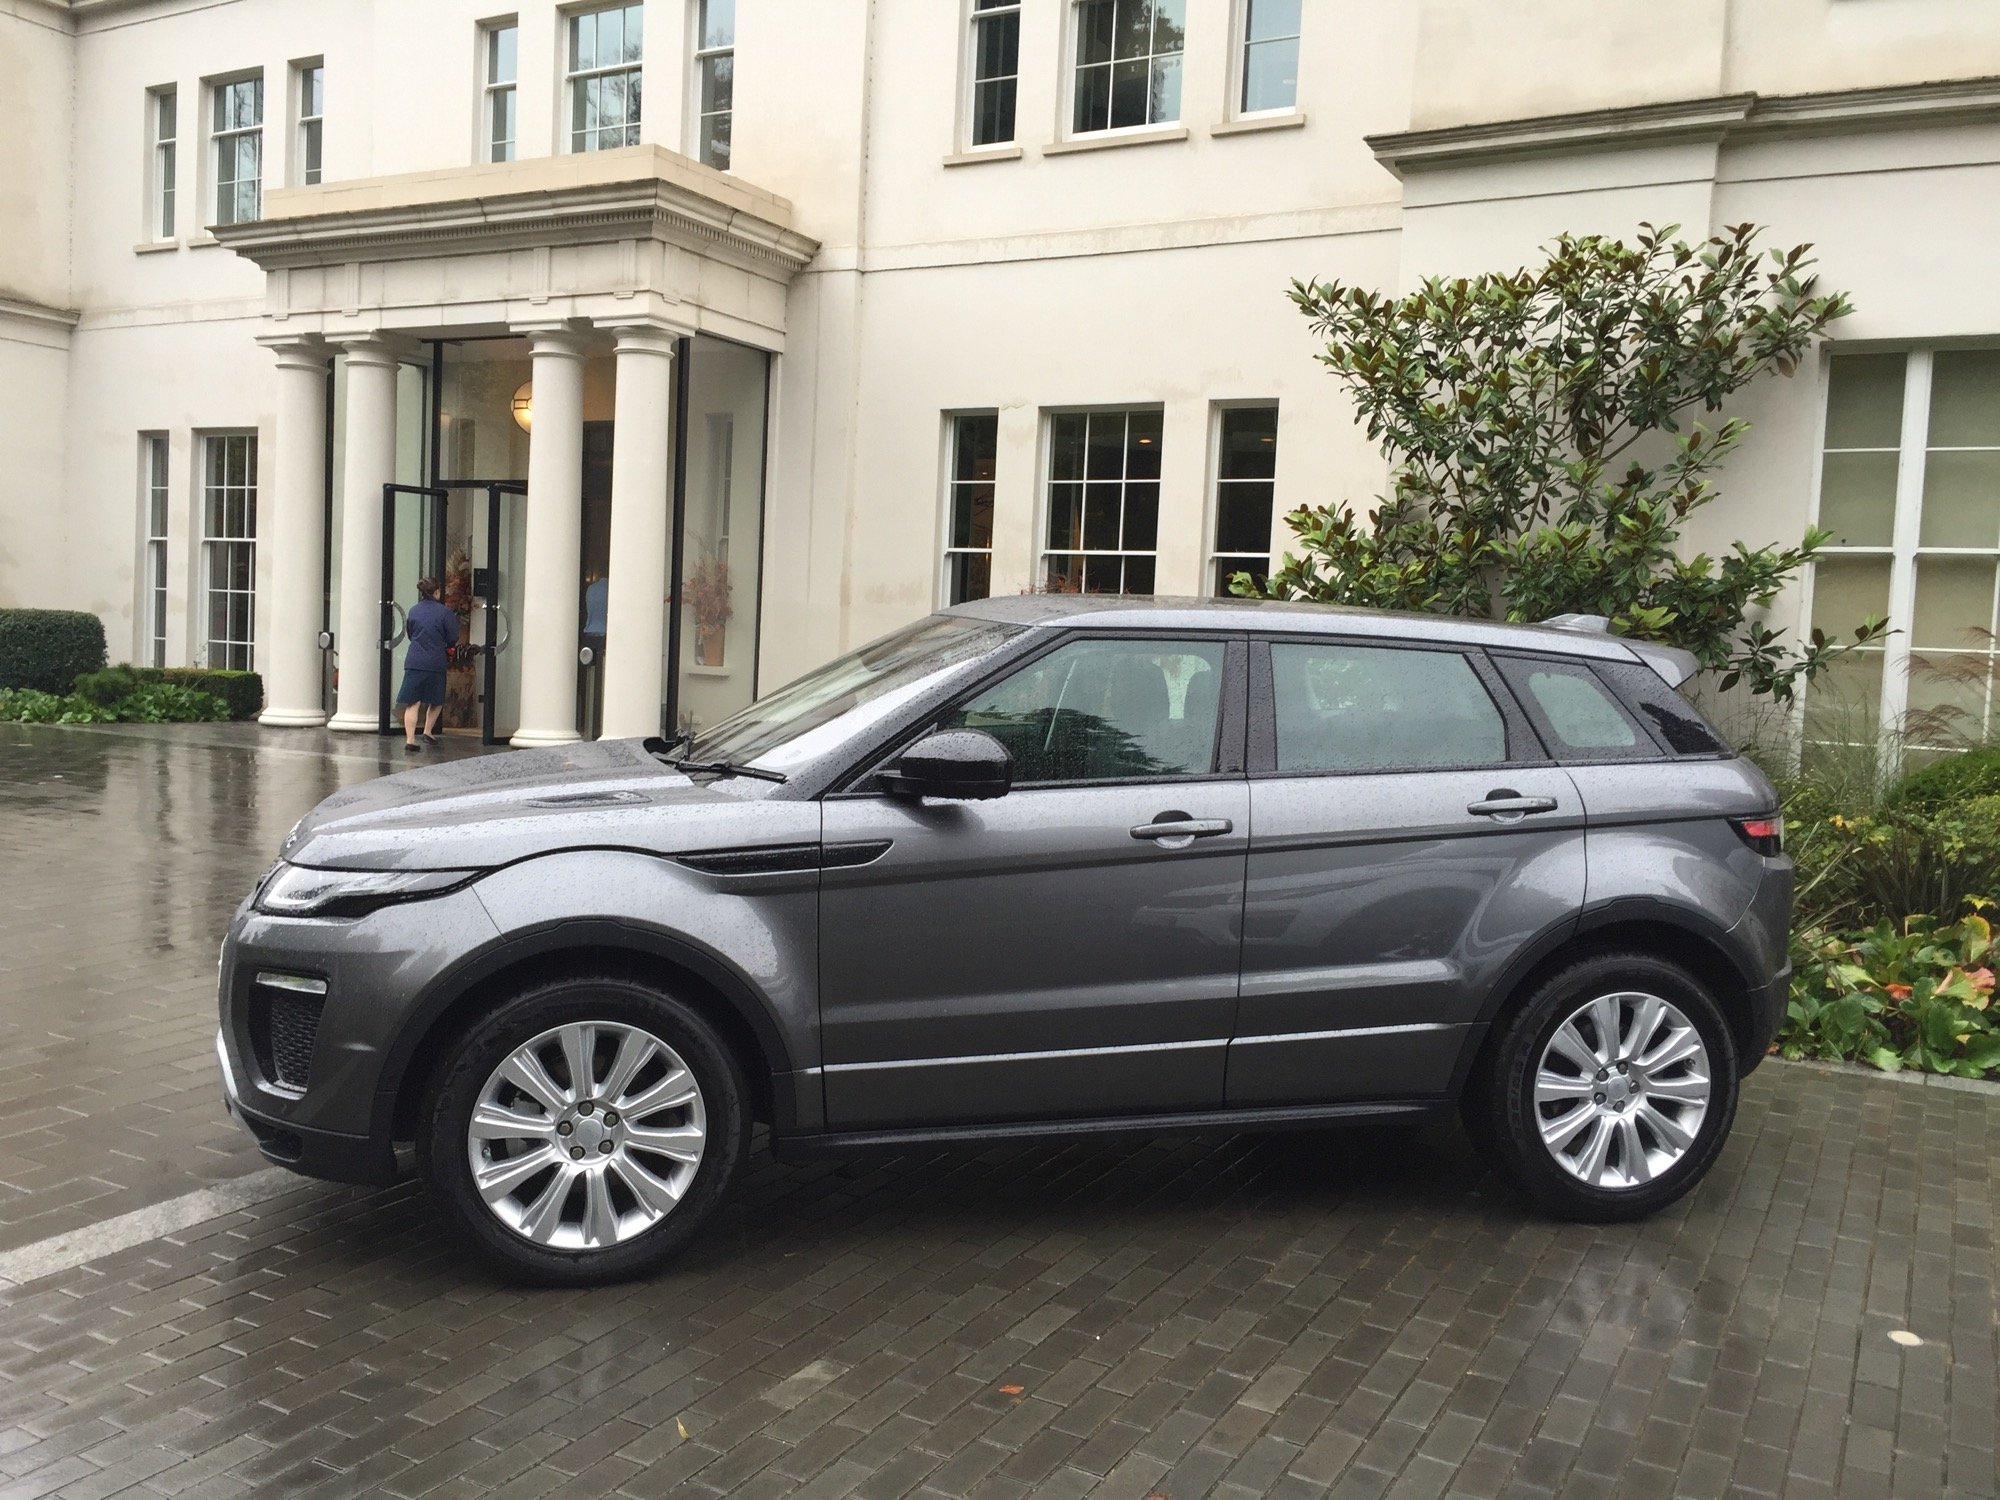 2016 range rover evoque review first drive caradvice. Black Bedroom Furniture Sets. Home Design Ideas